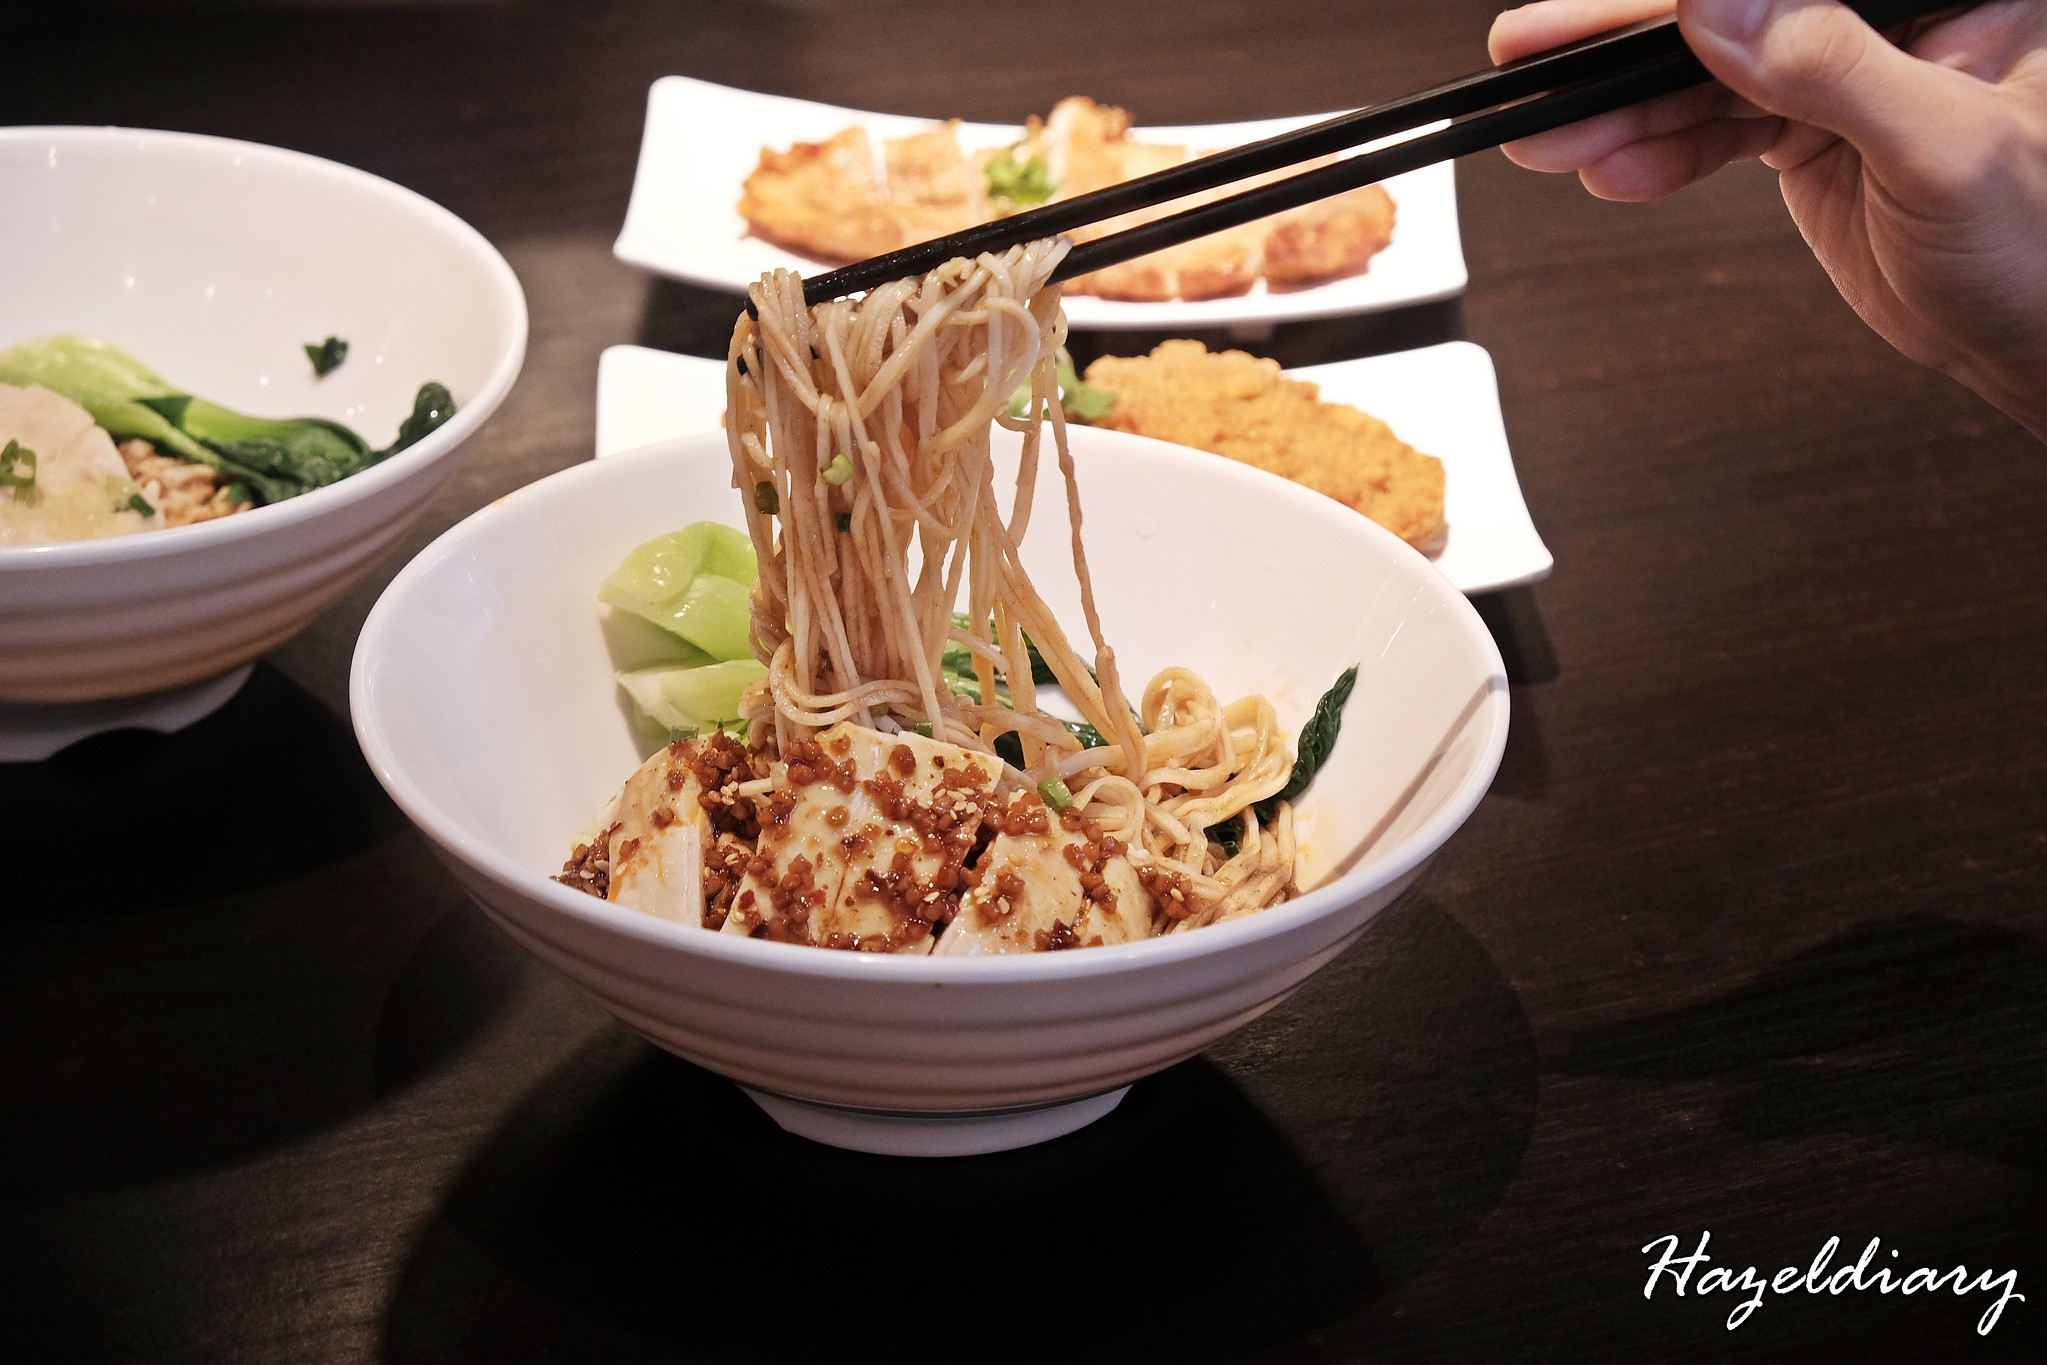 [SG EATS] Ju Hao by Ministry of Food At Singpost Centre – Healthy Taiwanese Sundried Noodles